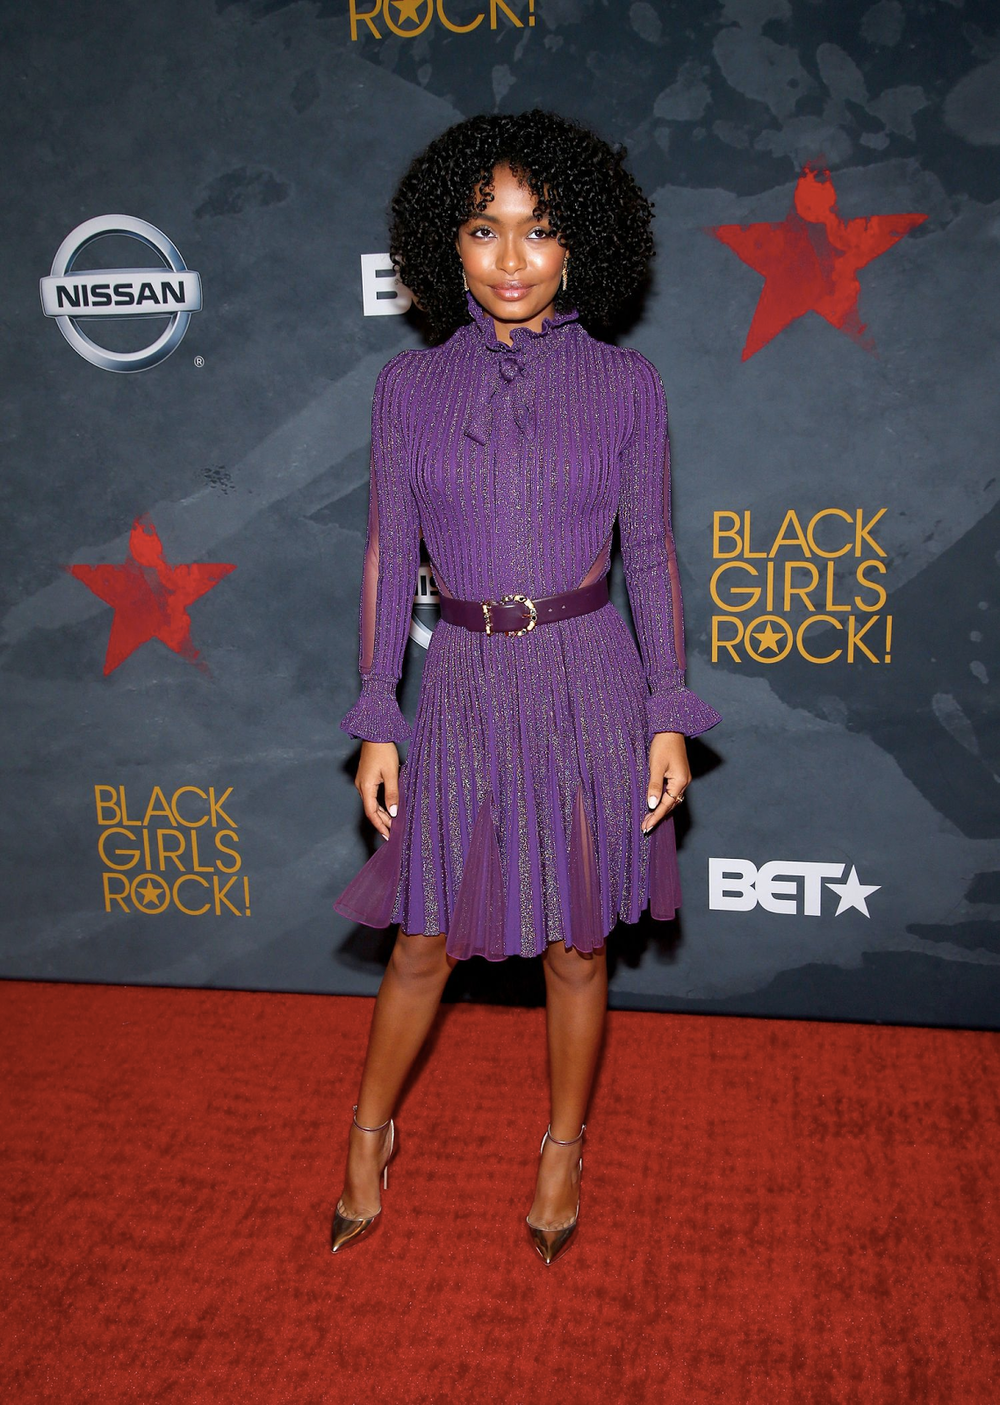 (via: BET.com)    Blackish star Yara Shahidi stunned in this purple bell sleeved garment.